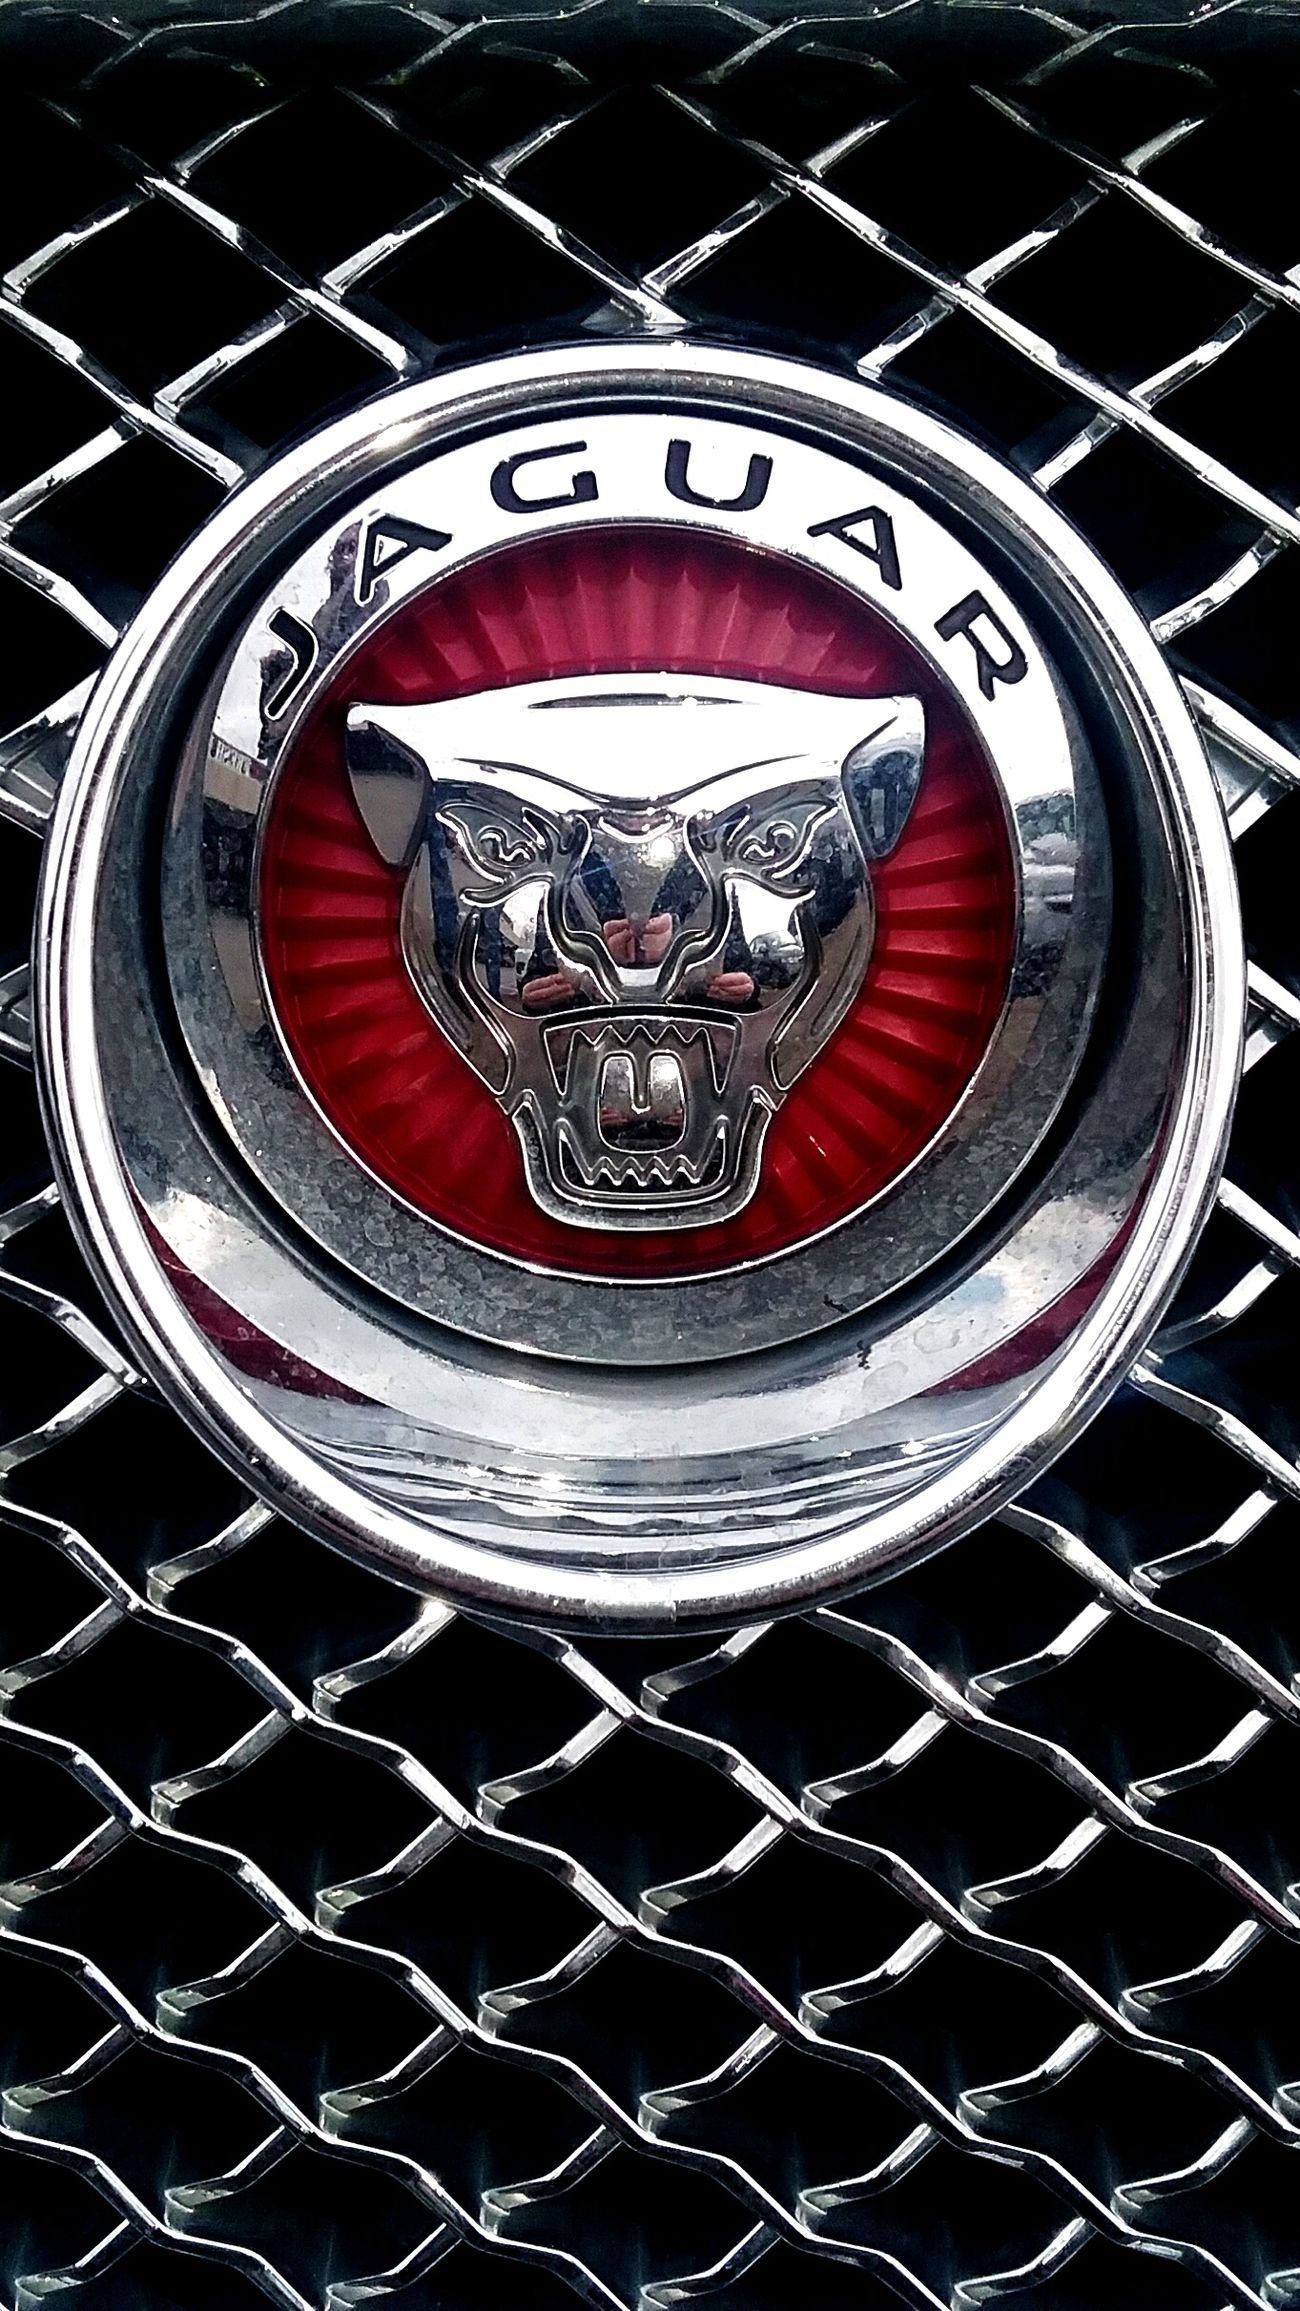 Day 50: Jaguar 365DaysOfAwesomeness PhotographyProject Day50 Luxary Cars JAGUAR Pattern Close-up